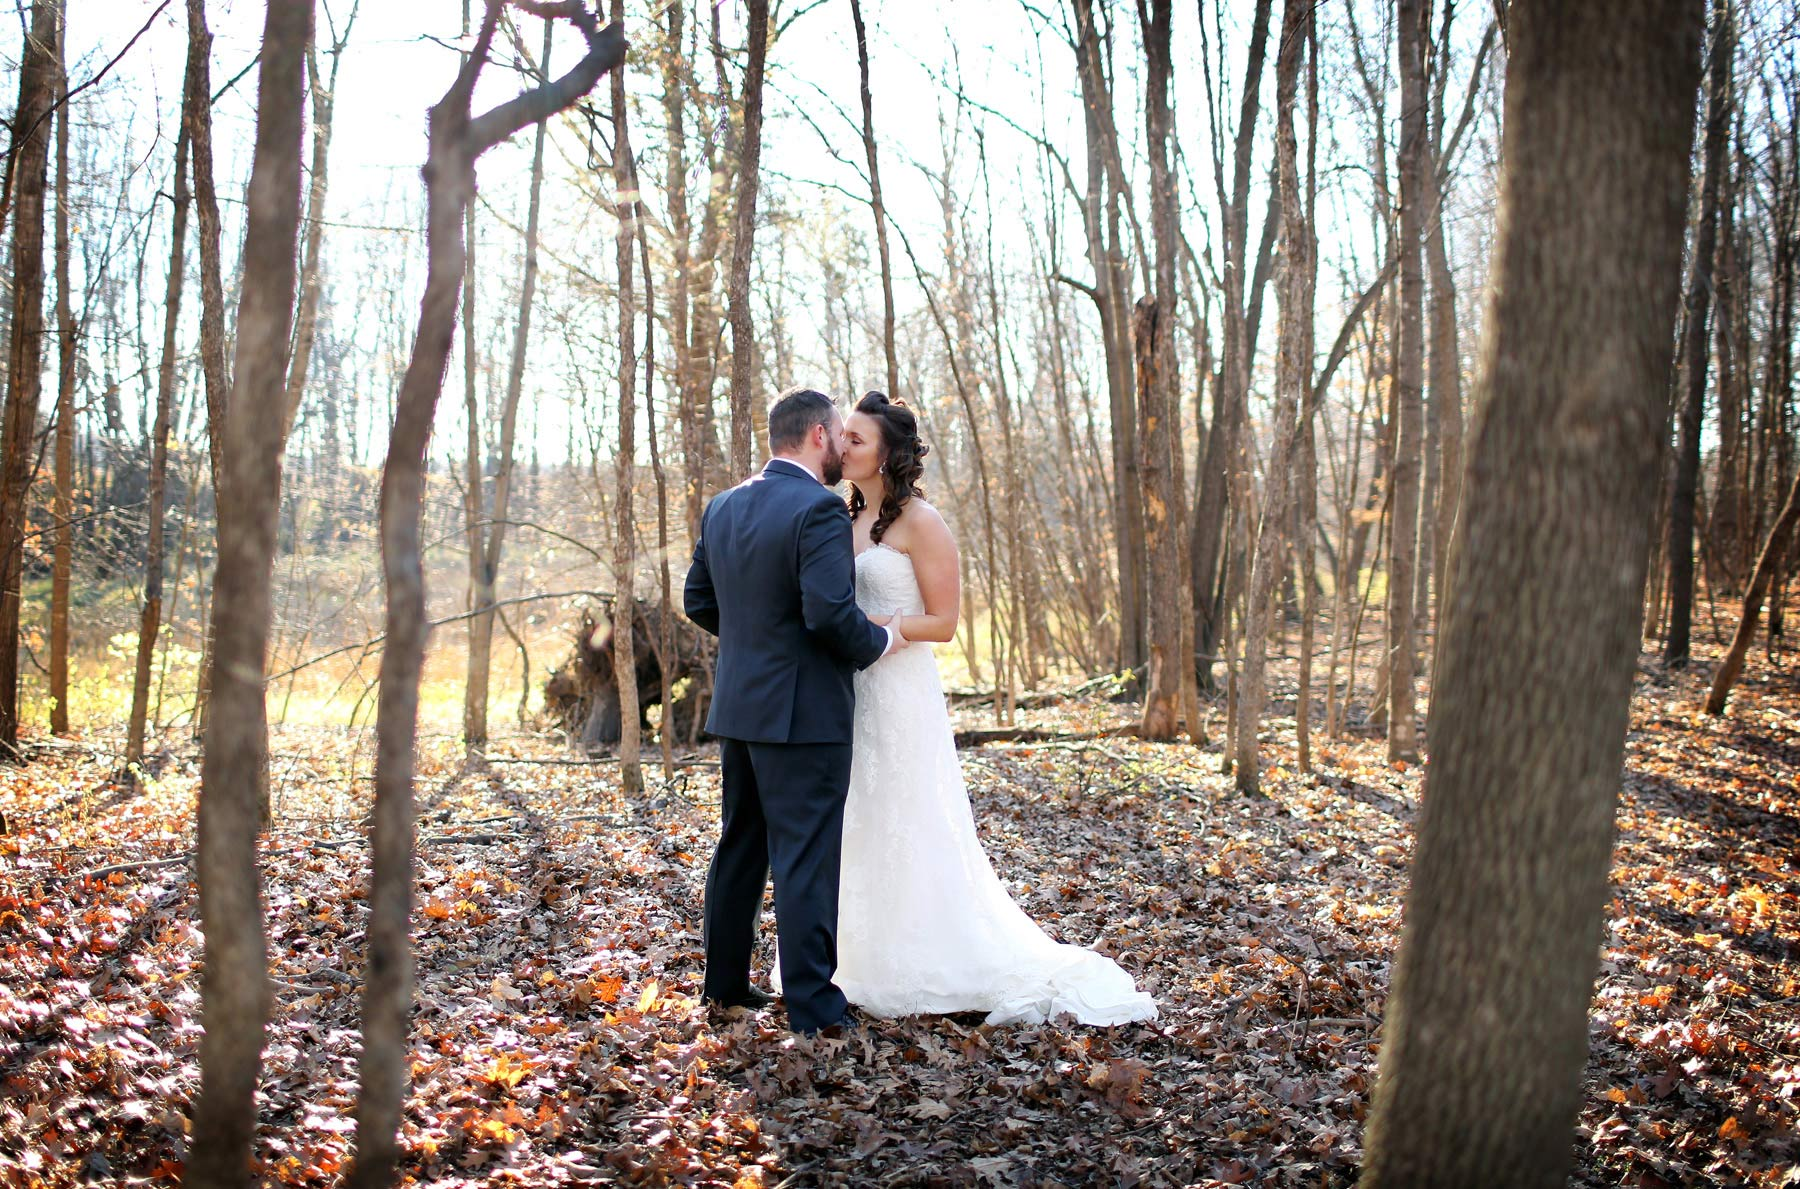 05-Minneapolis-Minnesota-Wedding-Photography-by-Vick-Photography-Prior-Lake-Horse-and-Hunt-Club-Rustic-Woods-Sarah-and-Steve.jpg